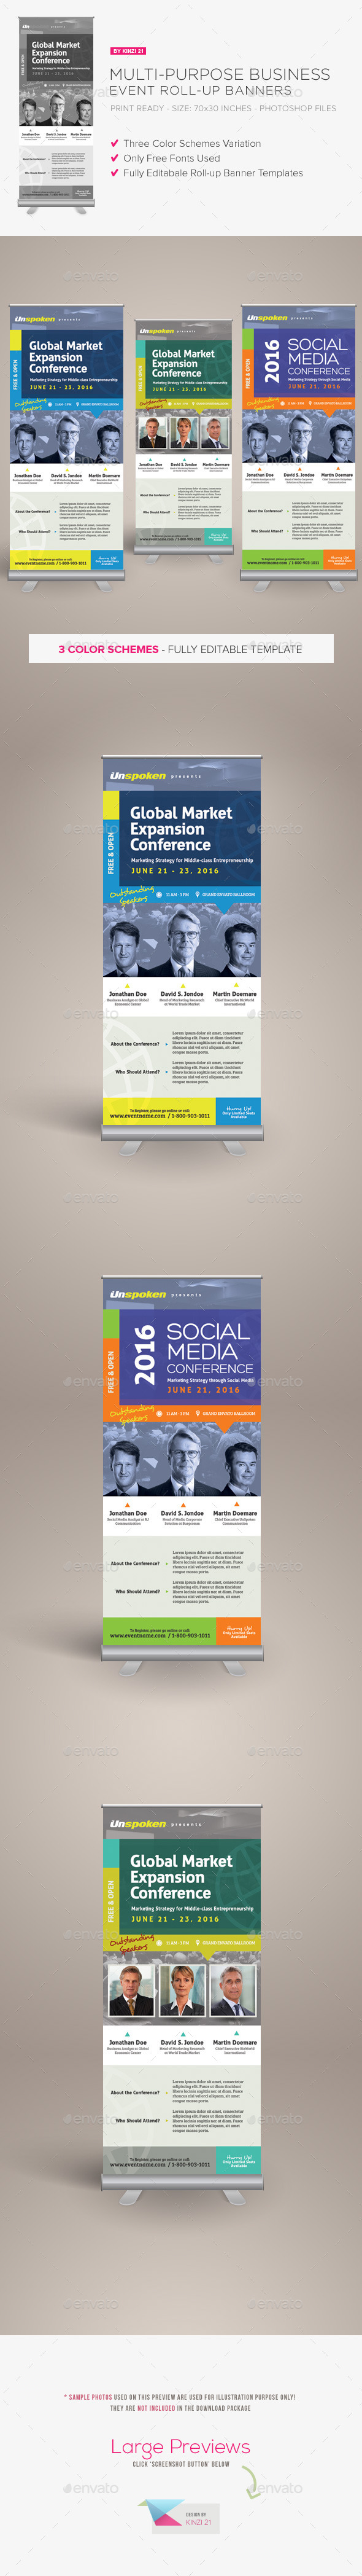 GraphicRiver Multi Purpose Business Event Roll-up Banners 10864094